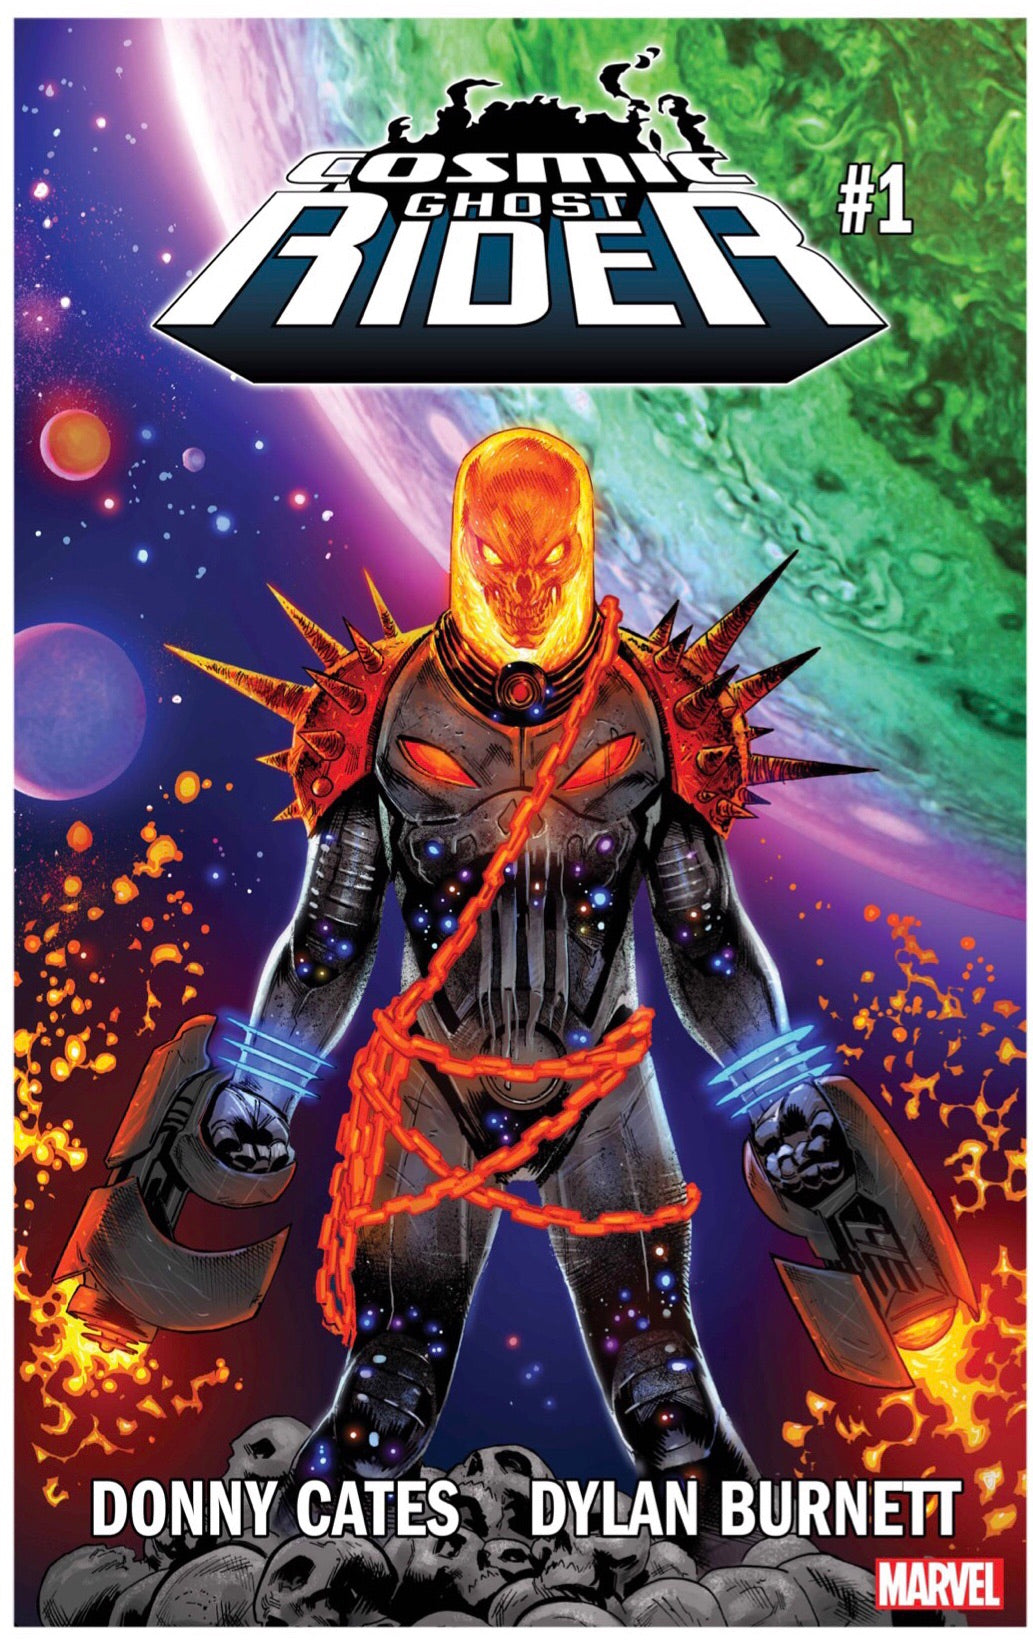 COSMIC GHOST RIDER #1 (OF 5) FOC 06/11 (ADVANCE ORDER)